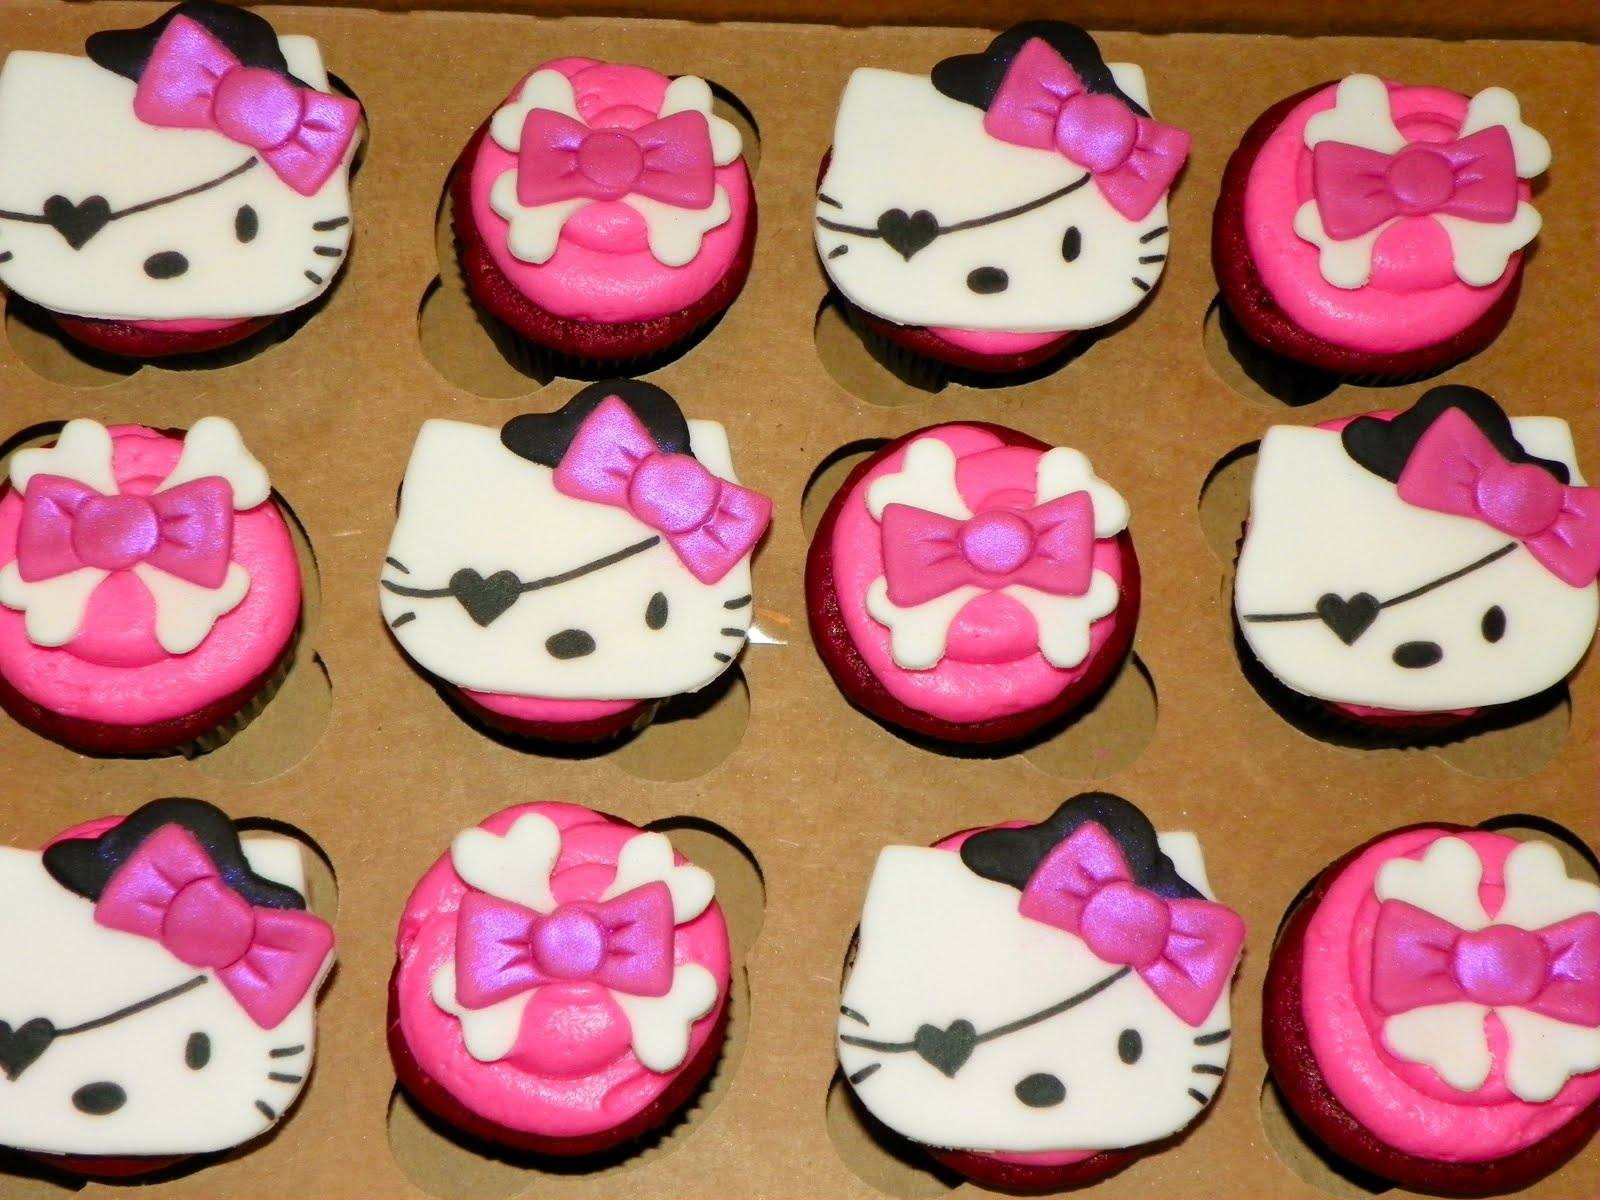 Plumeria Cake Studio: Punk Hello Kitty Cupcakes